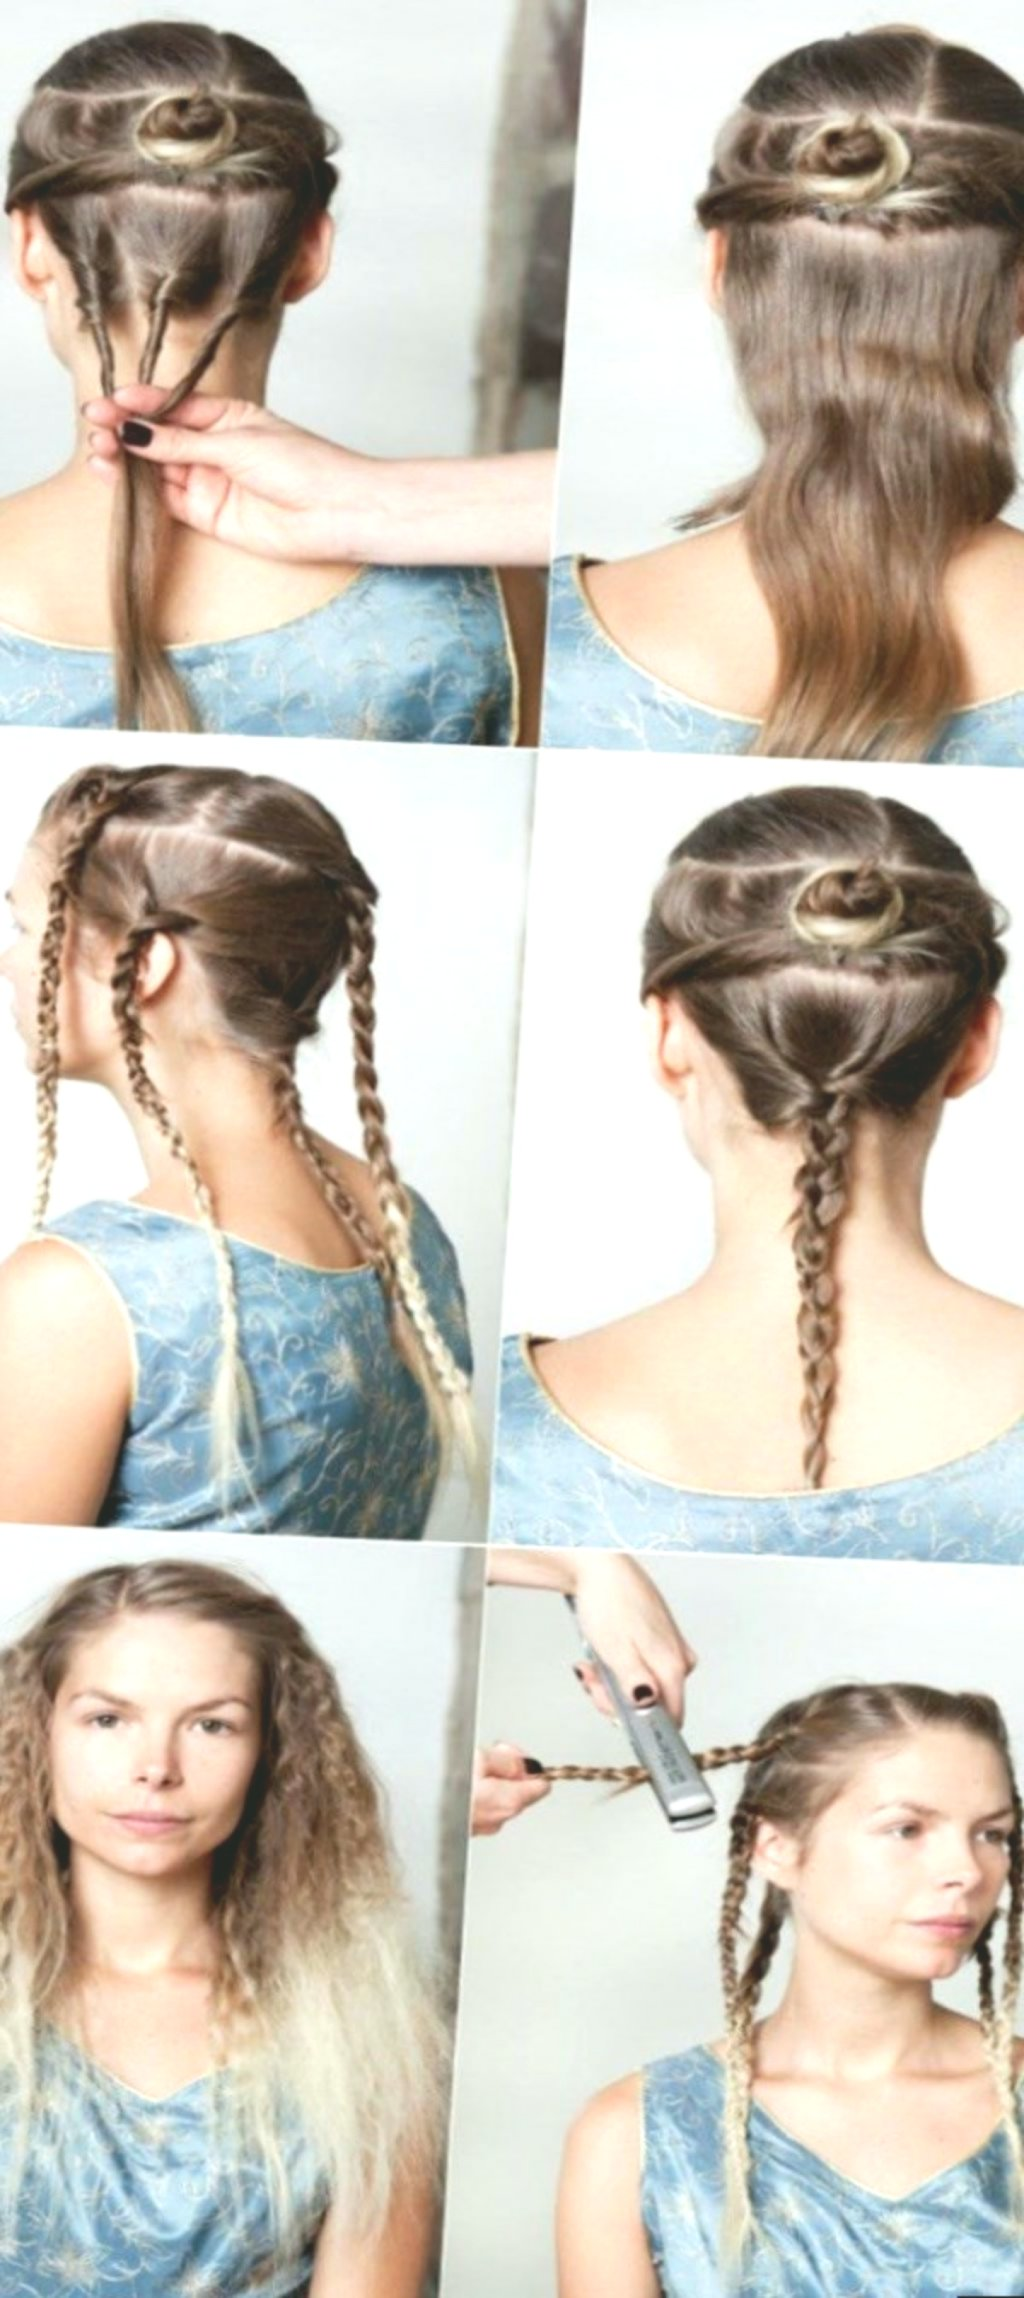 new braided hairstyles for kids plan-Excellent braided hairstyles For kids layout